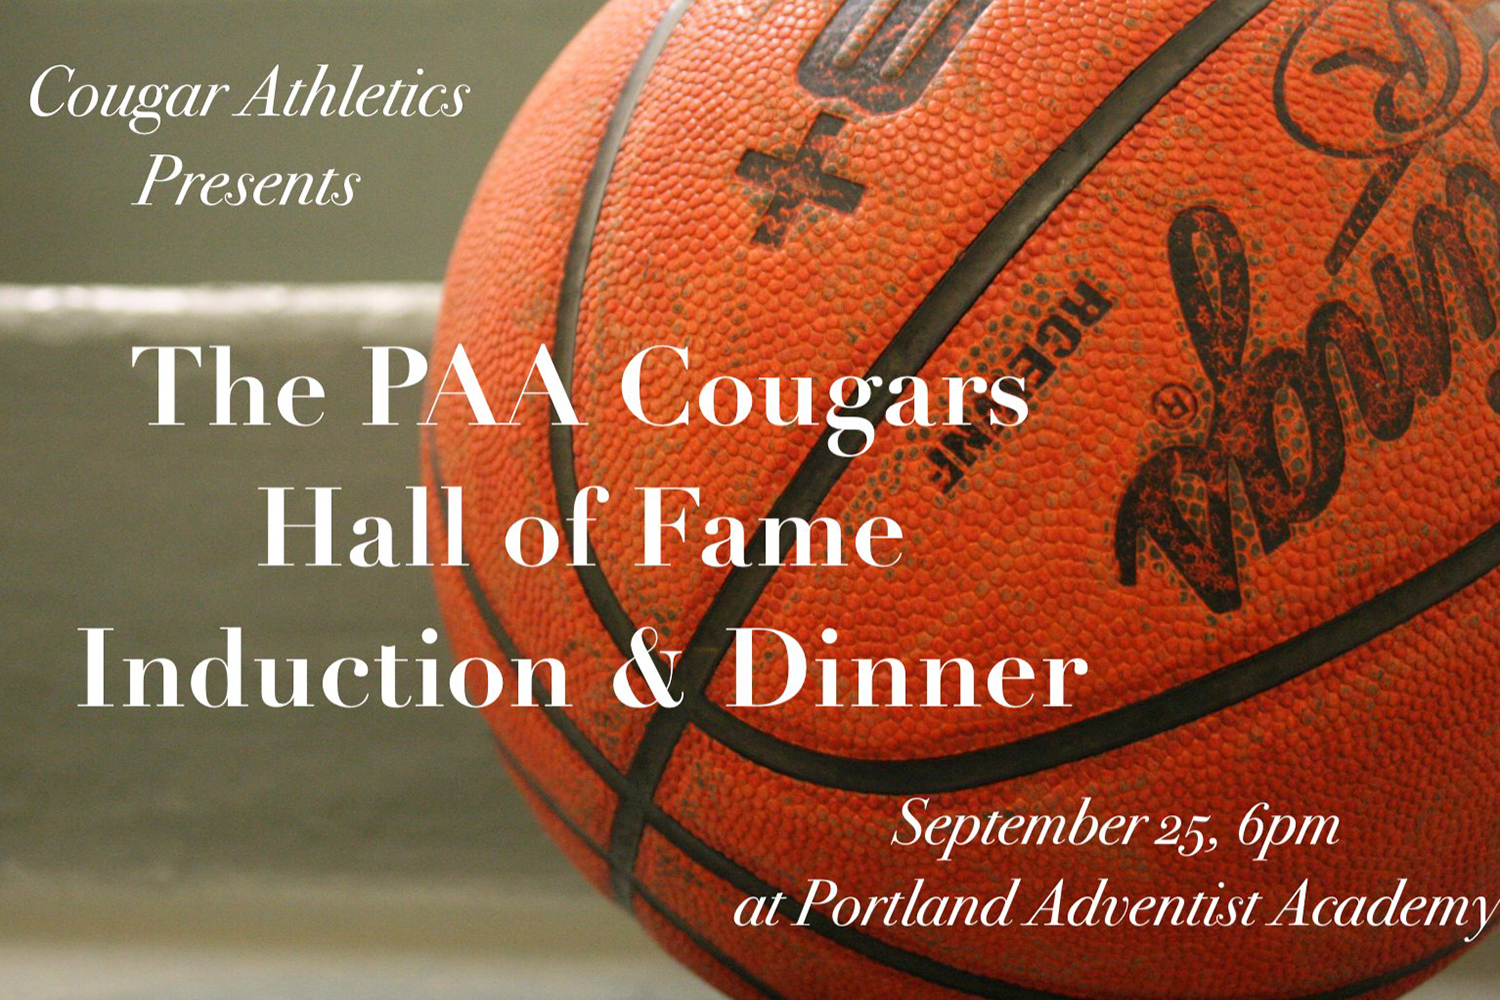 PAA's 50-Years of Cougars Celebration Weekend